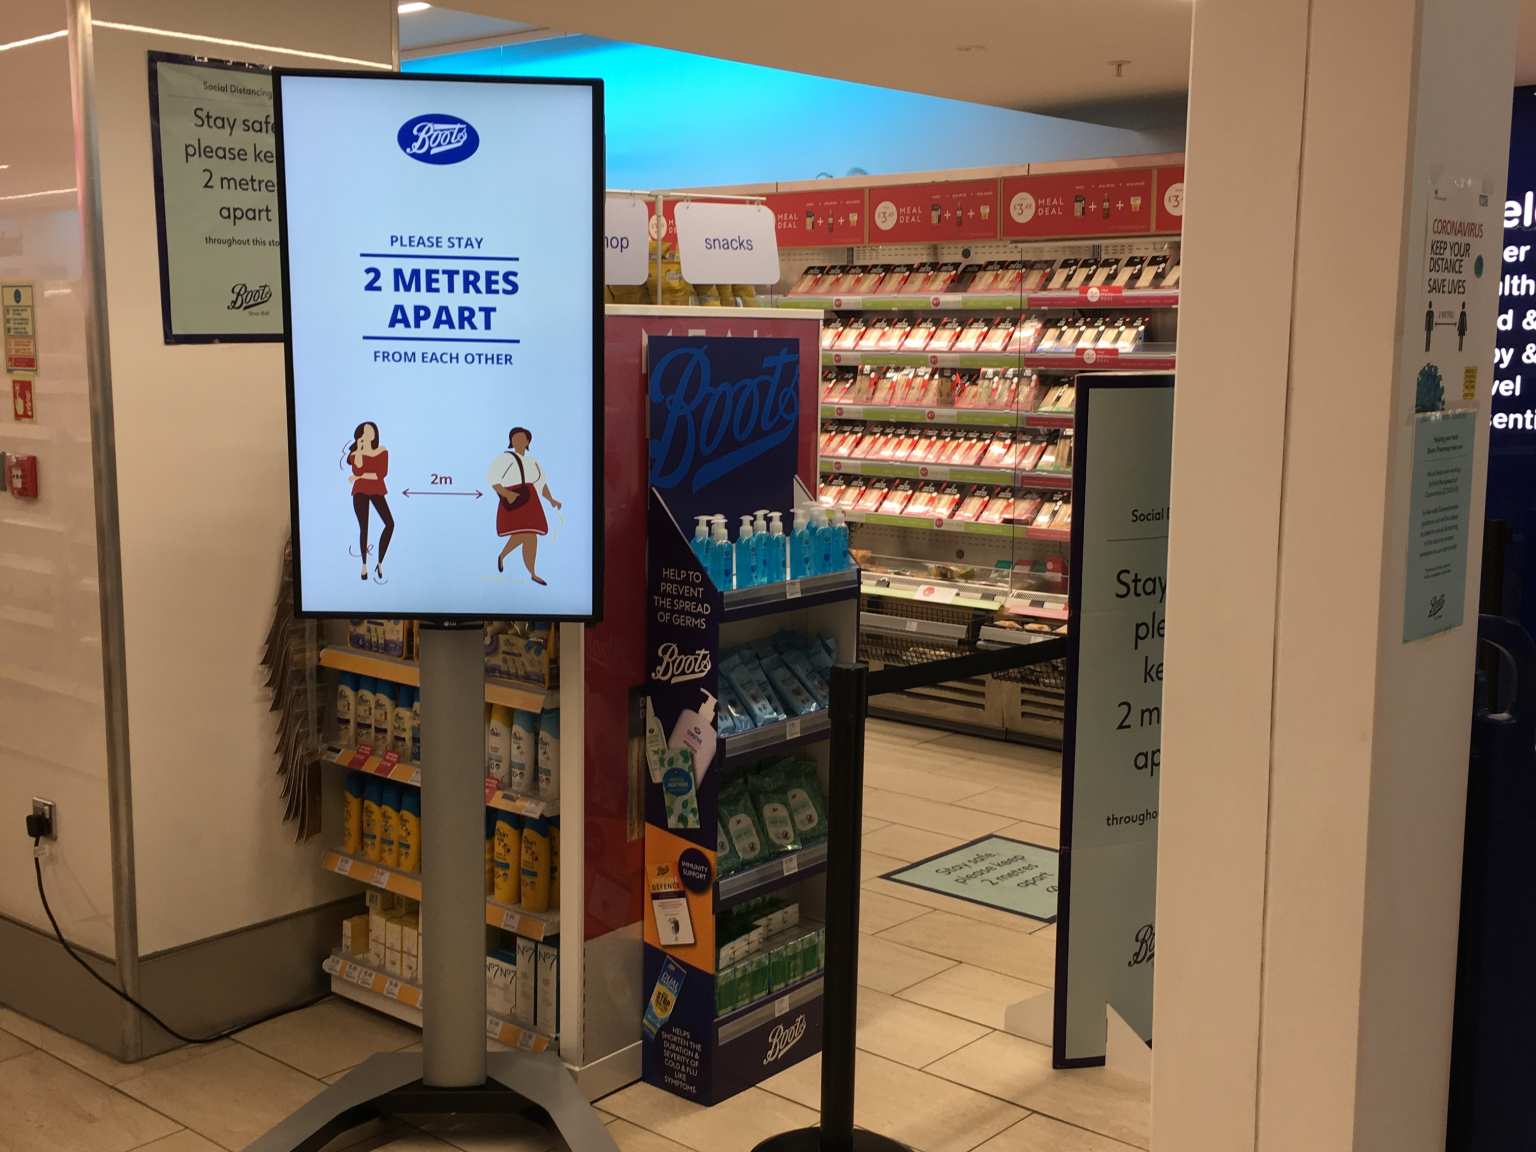 Digital sigange with COVID-19 guidelines at Boots at London Luton Airport